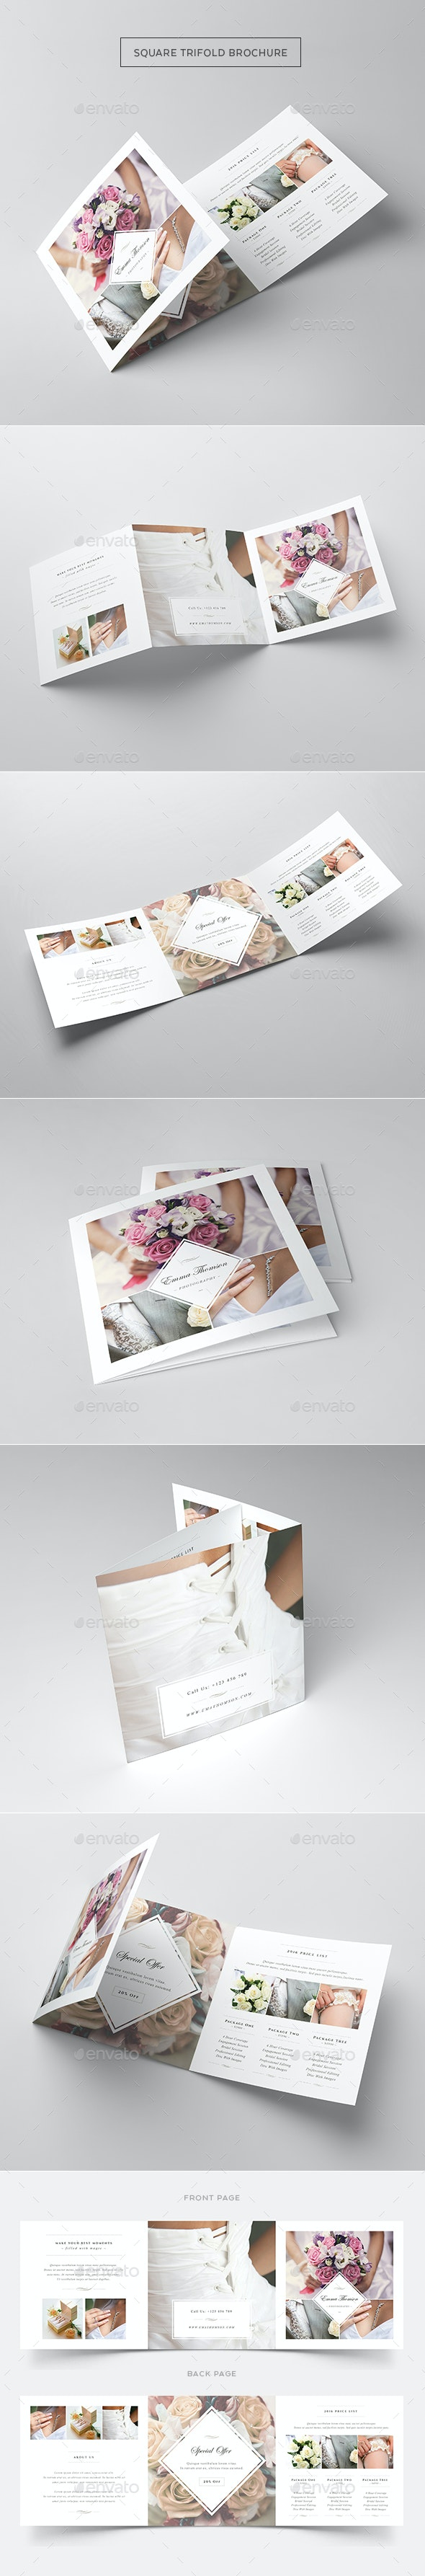 Photography Square Trifold Brochure Template - Informational Brochures